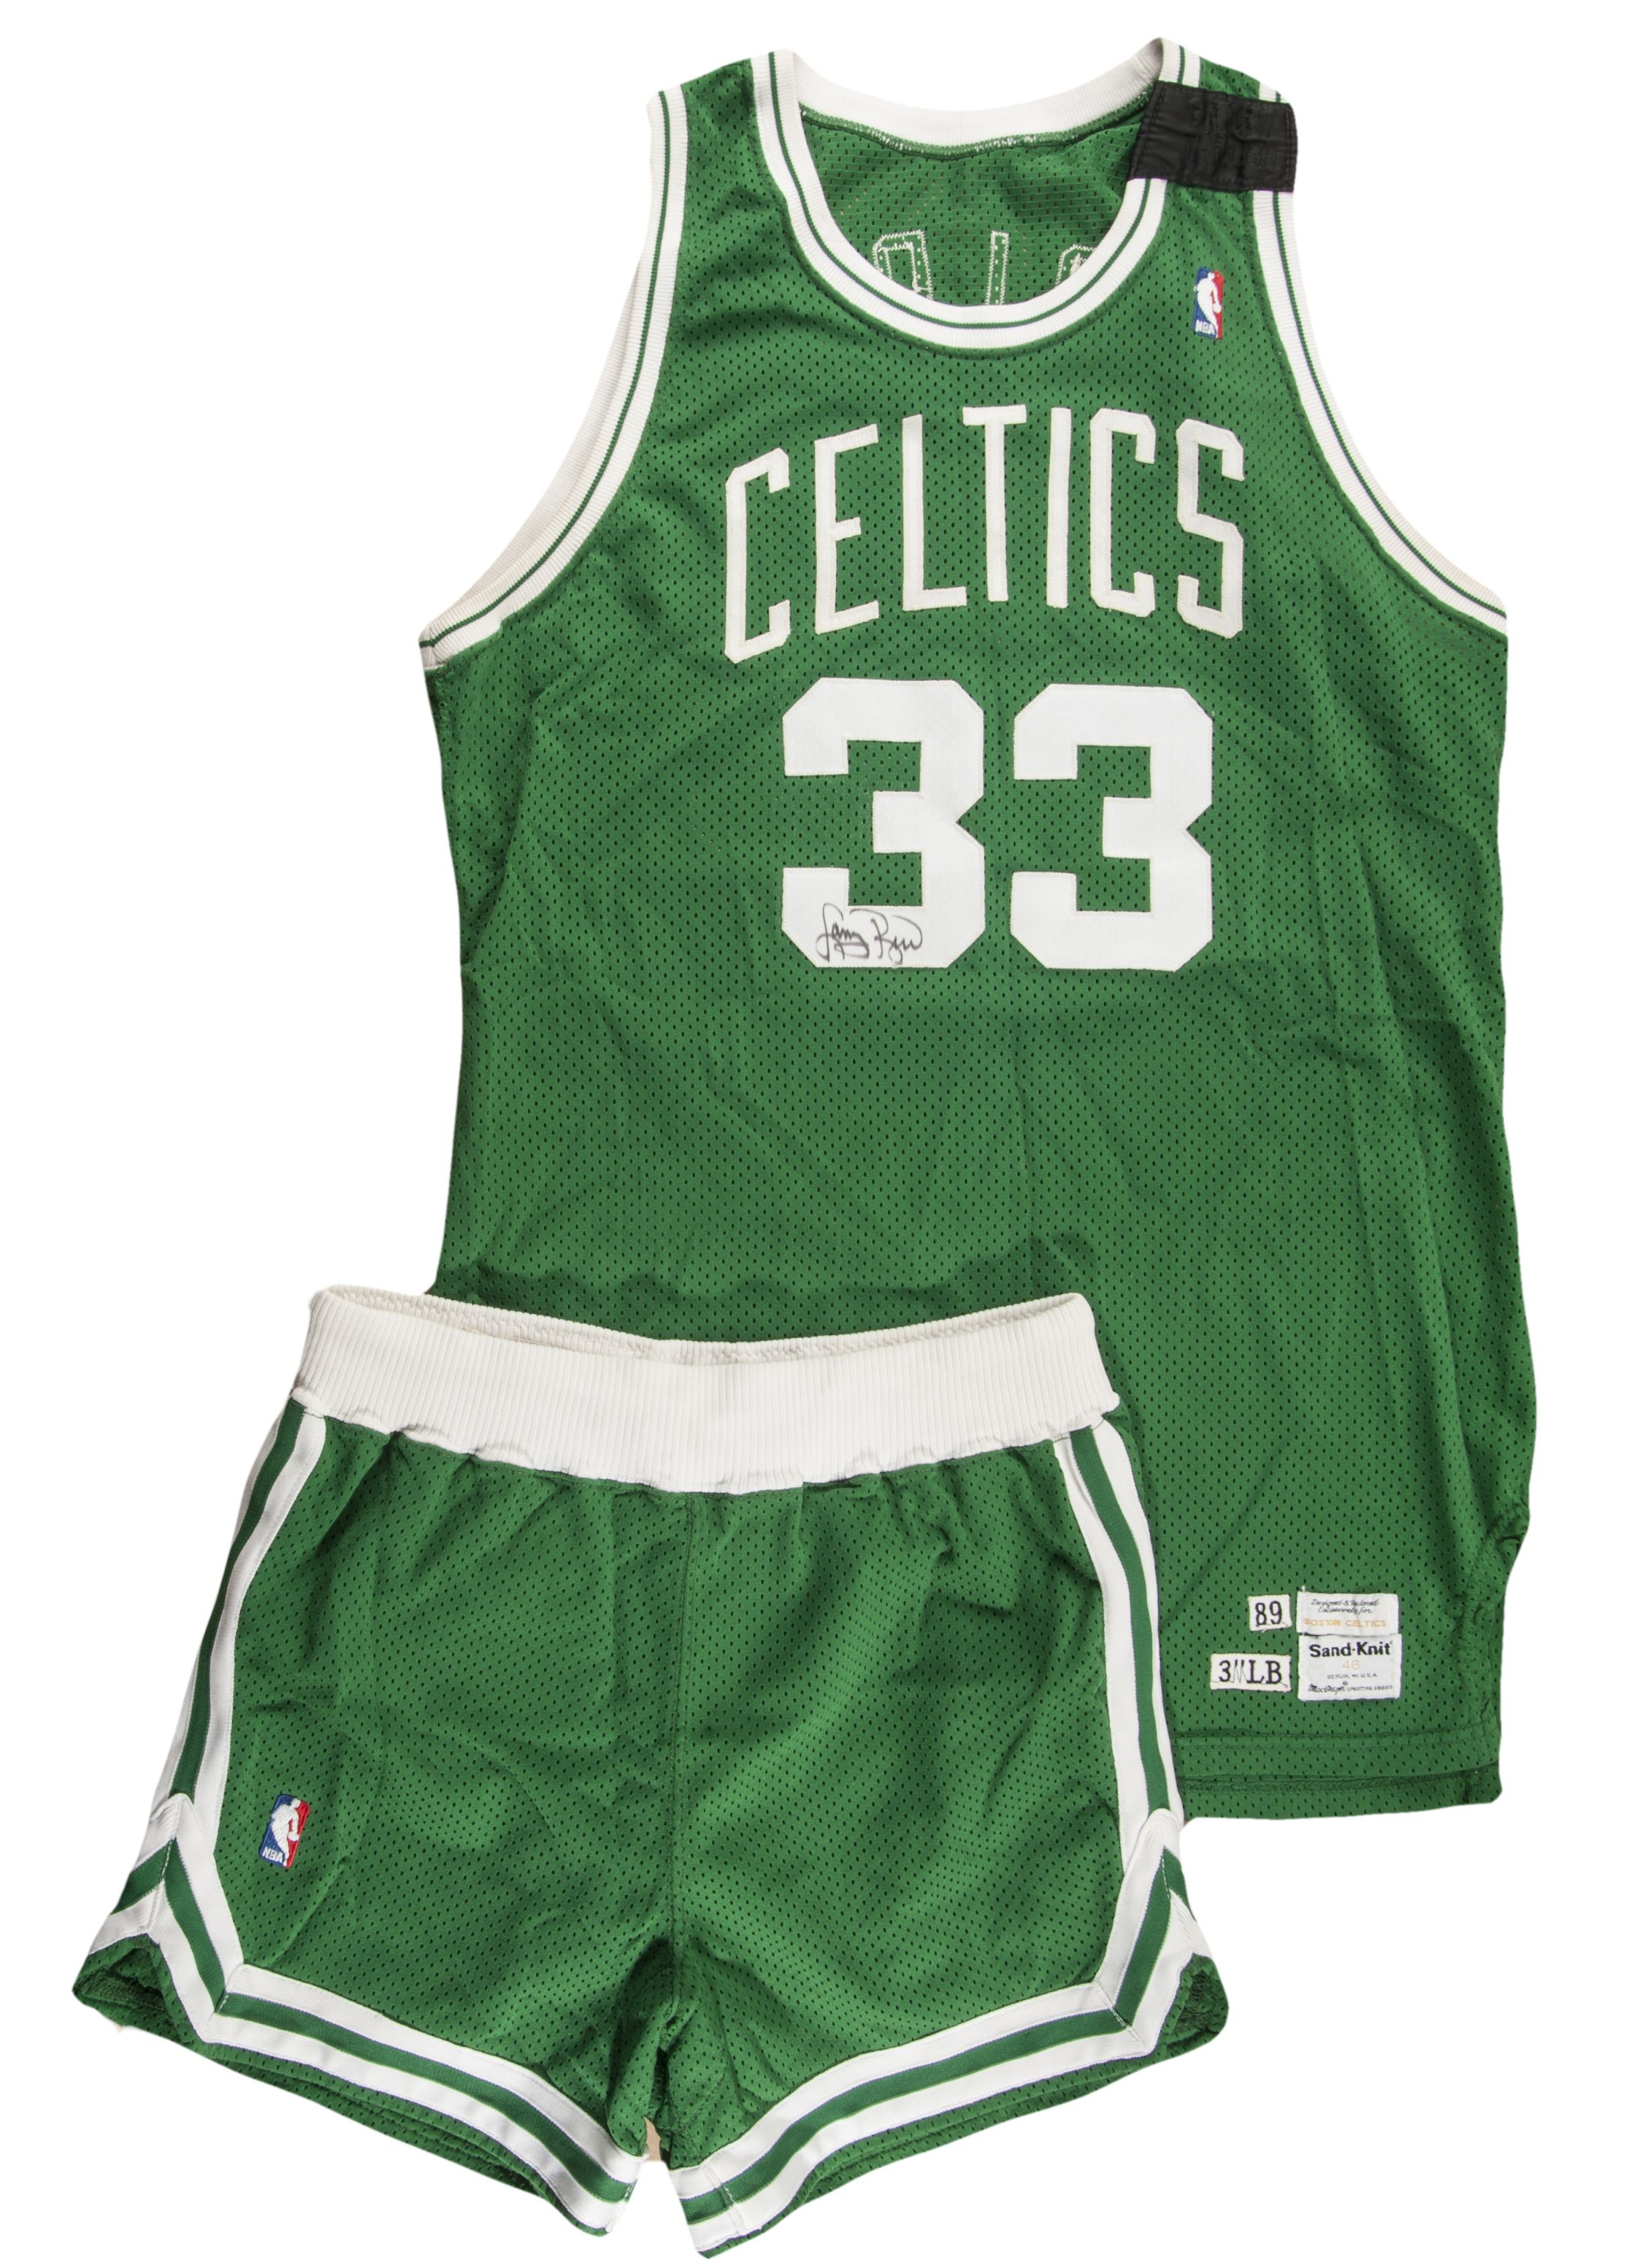 fe9a221acfec 1989 90 Larry Bird Game Worn and Signed Boston Celtics Road Jersey   Shorts